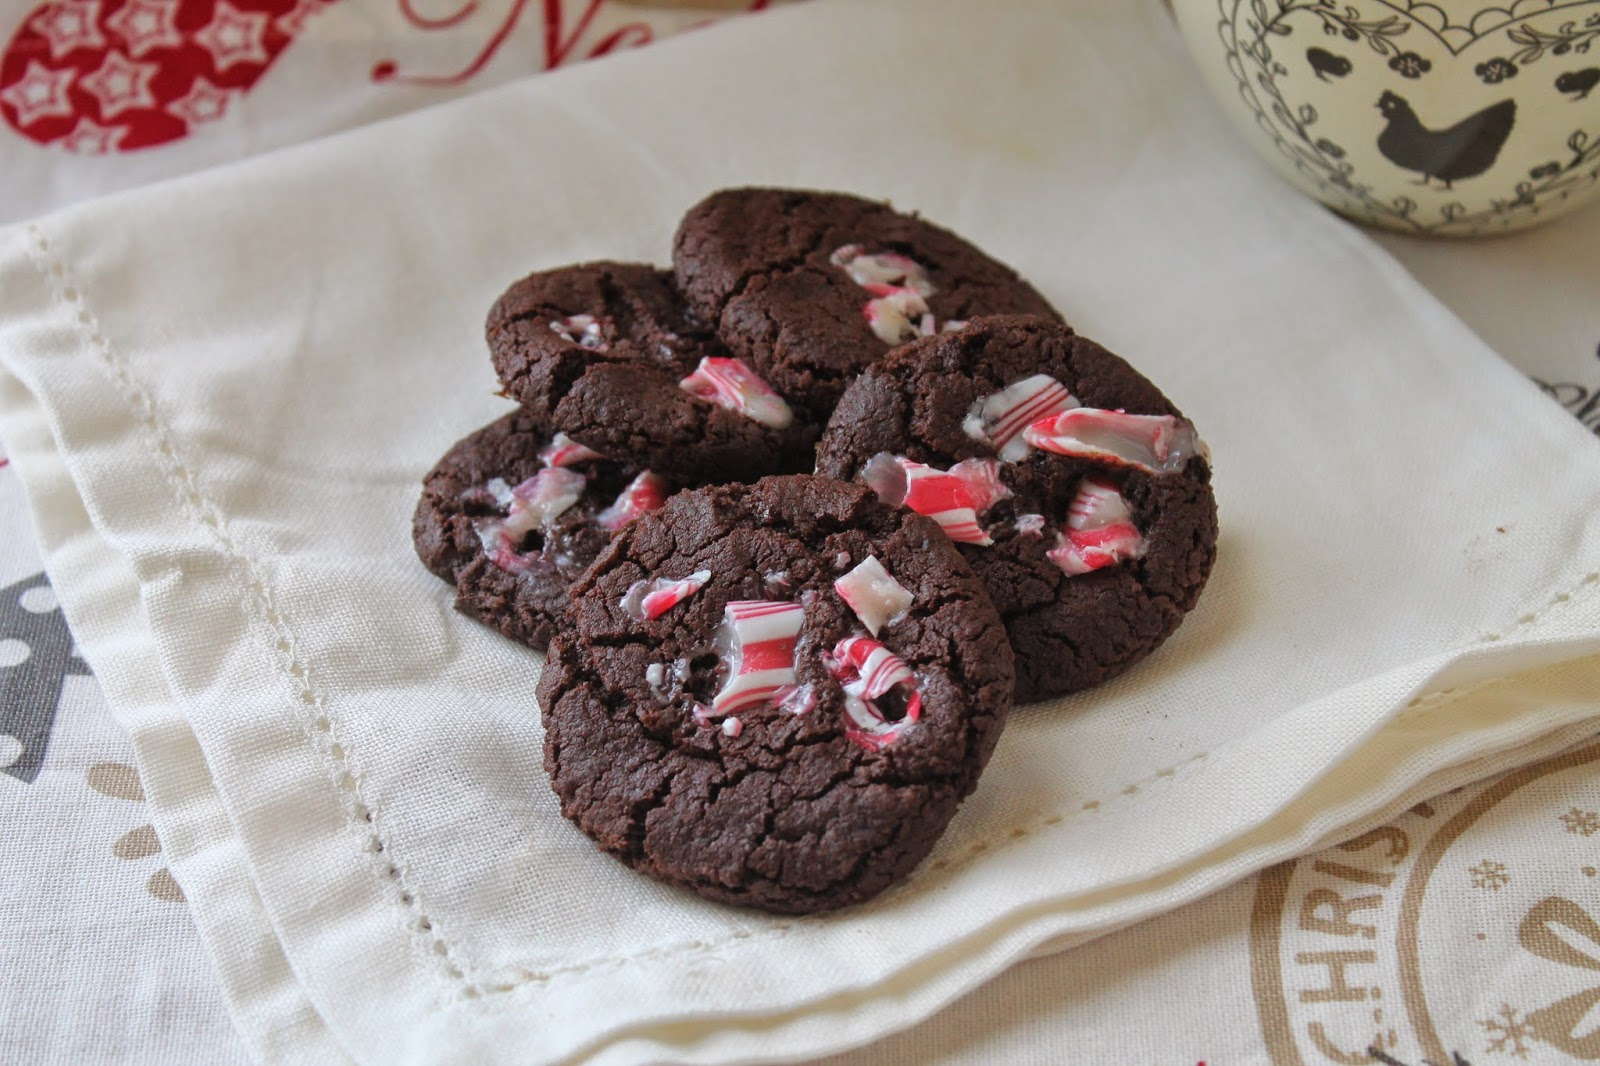 #christmasfood - chocolate candy cane cookies